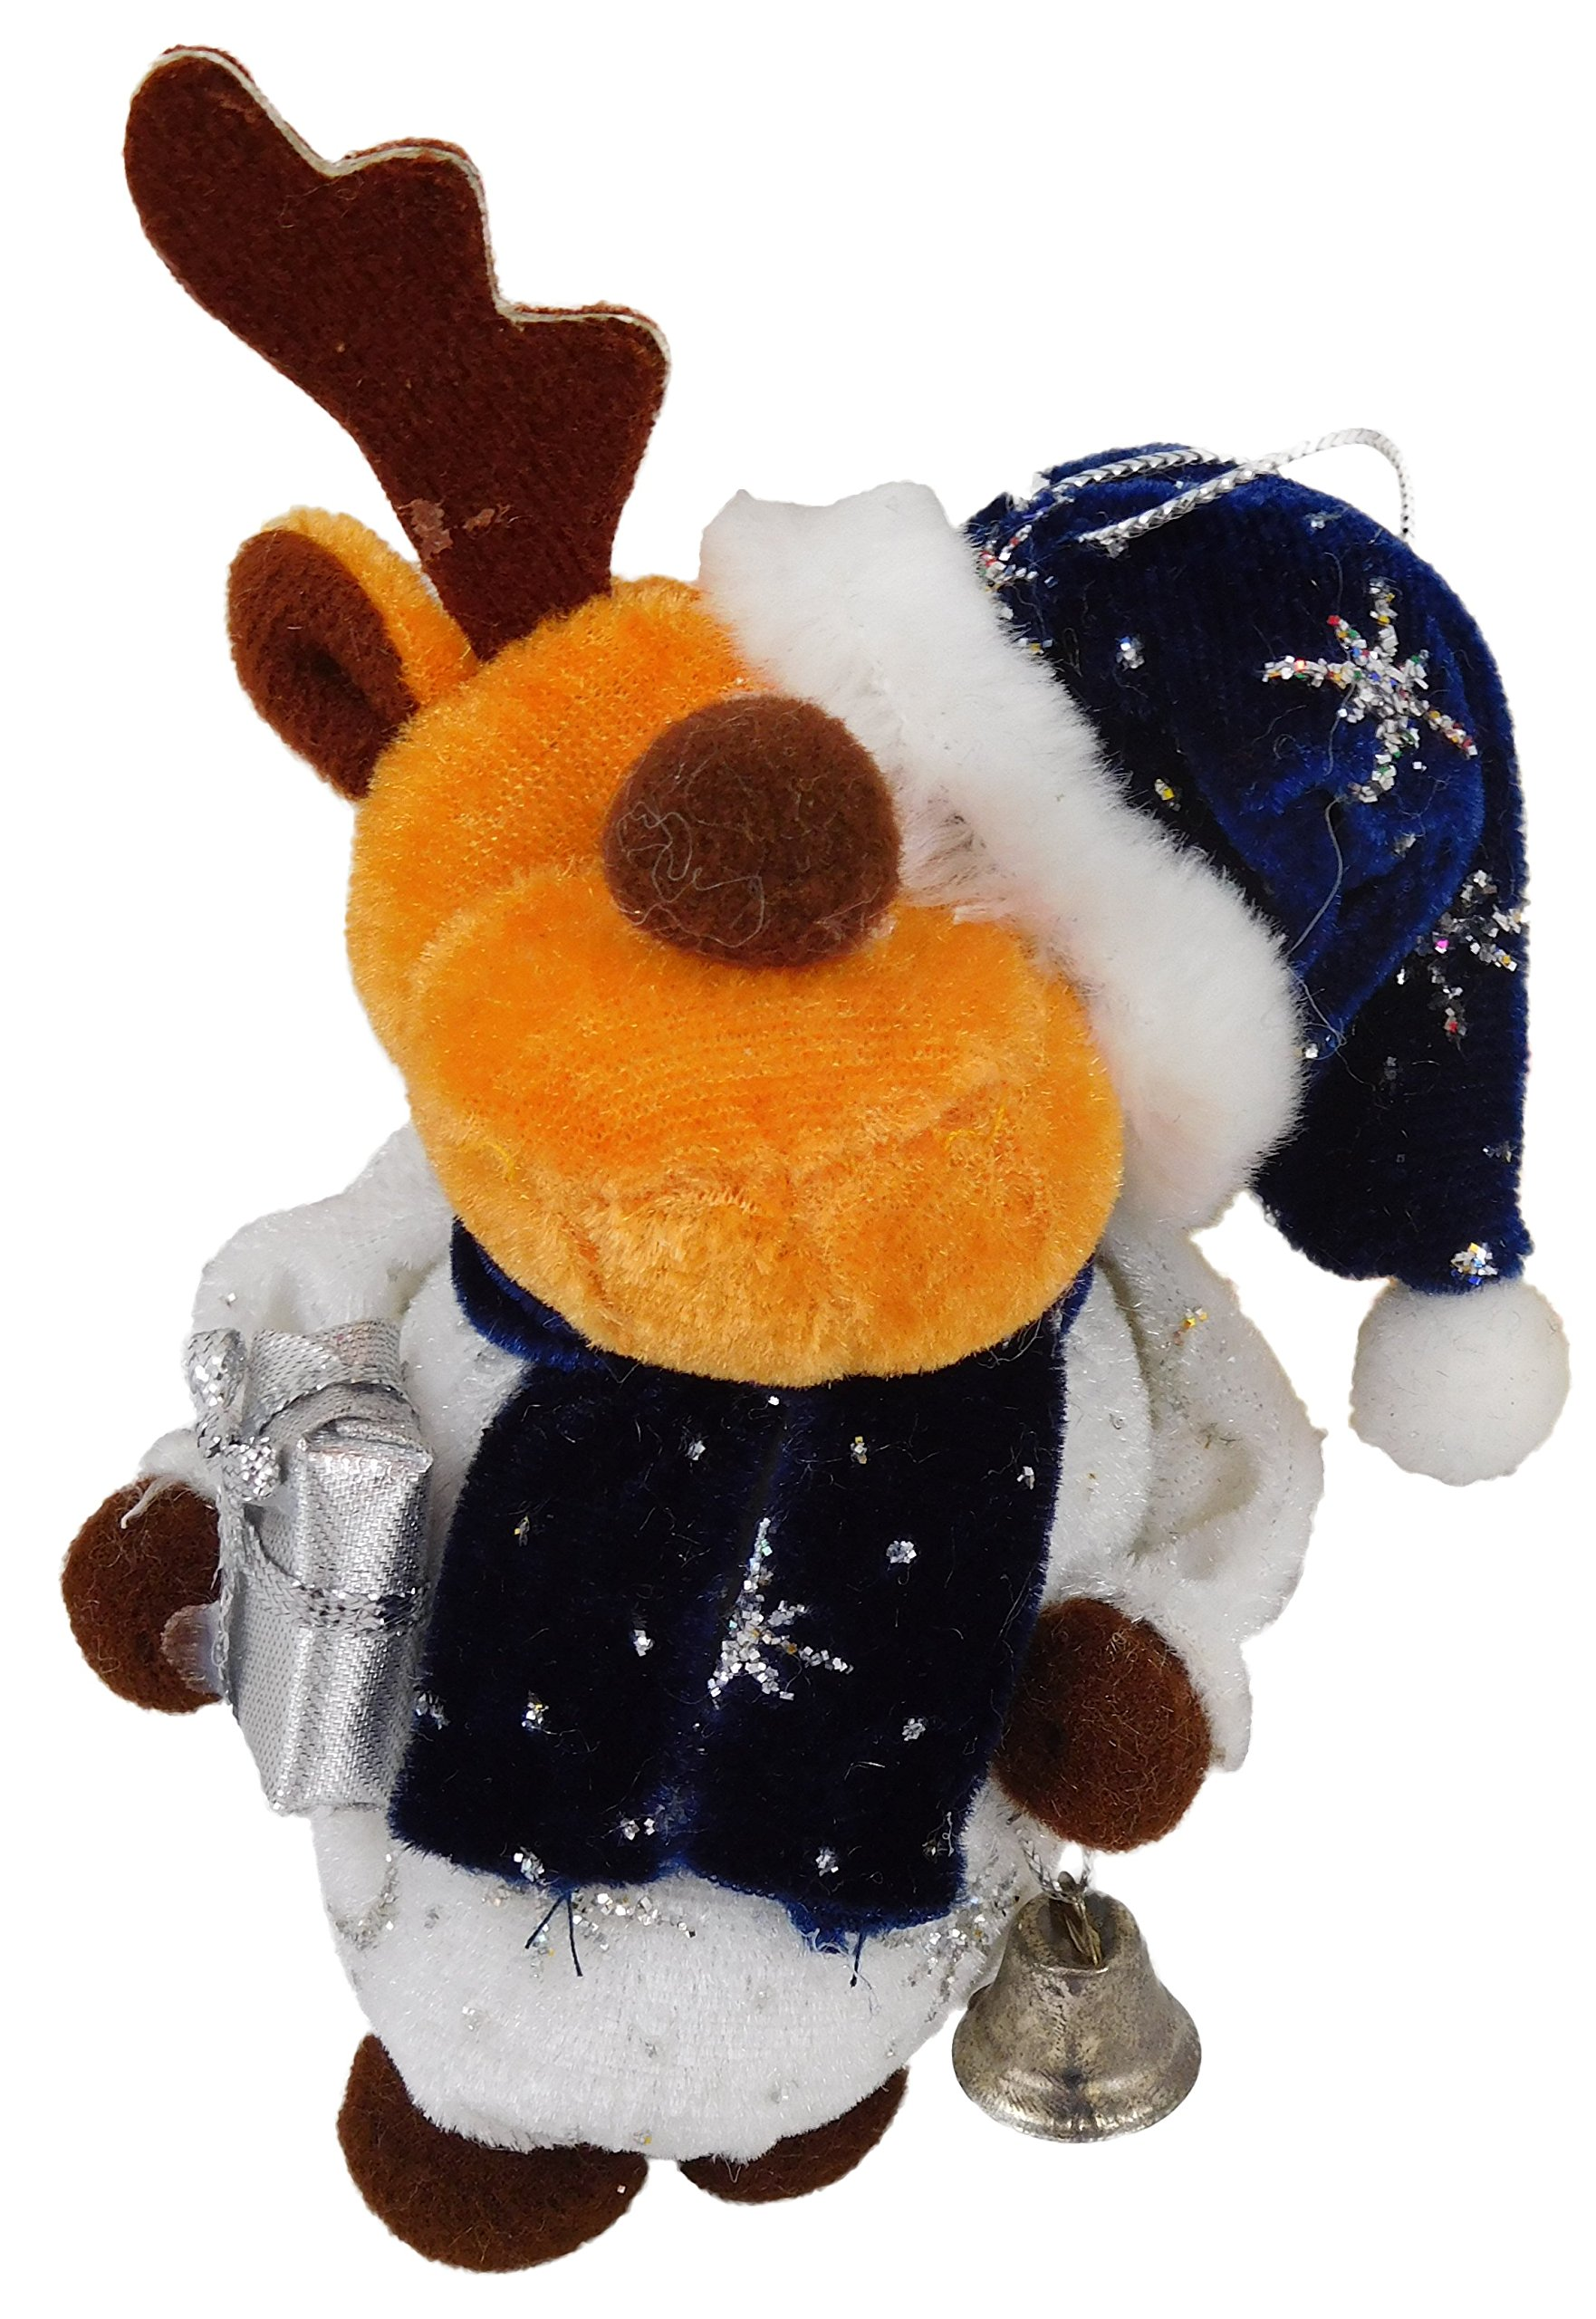 Christmas Concepts 4'' Angela's Sparkle Fabric Hanging Reindeer Christmas Tree Decoration - Reindeer with Blue Hat - Cute Christmas Decorations